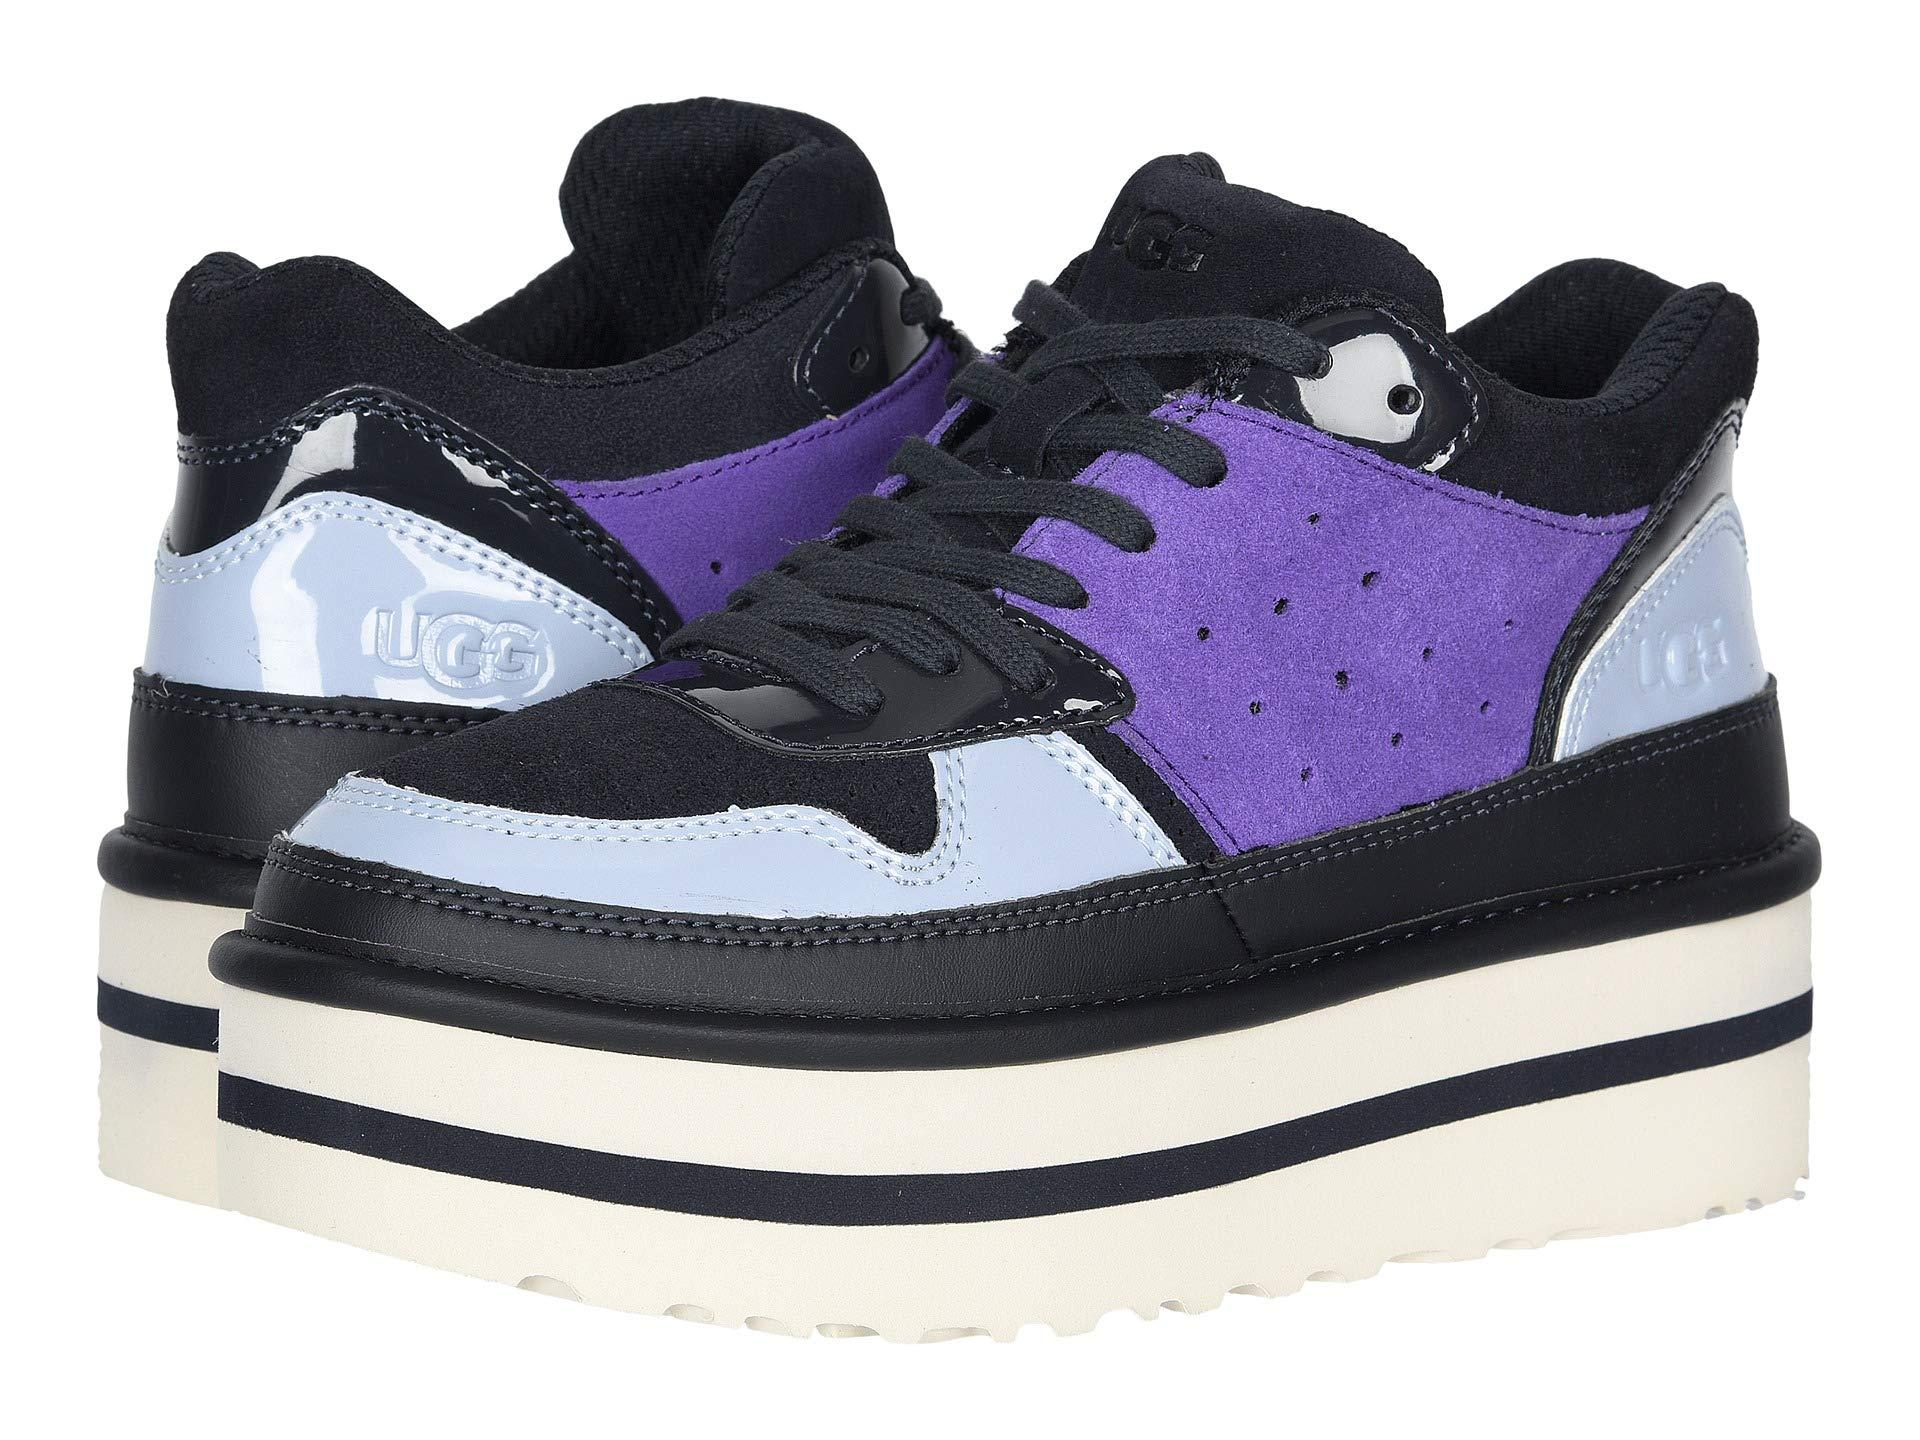 new high quality autumn shoes price reduced Women's Blue Pop Punk Sneaker